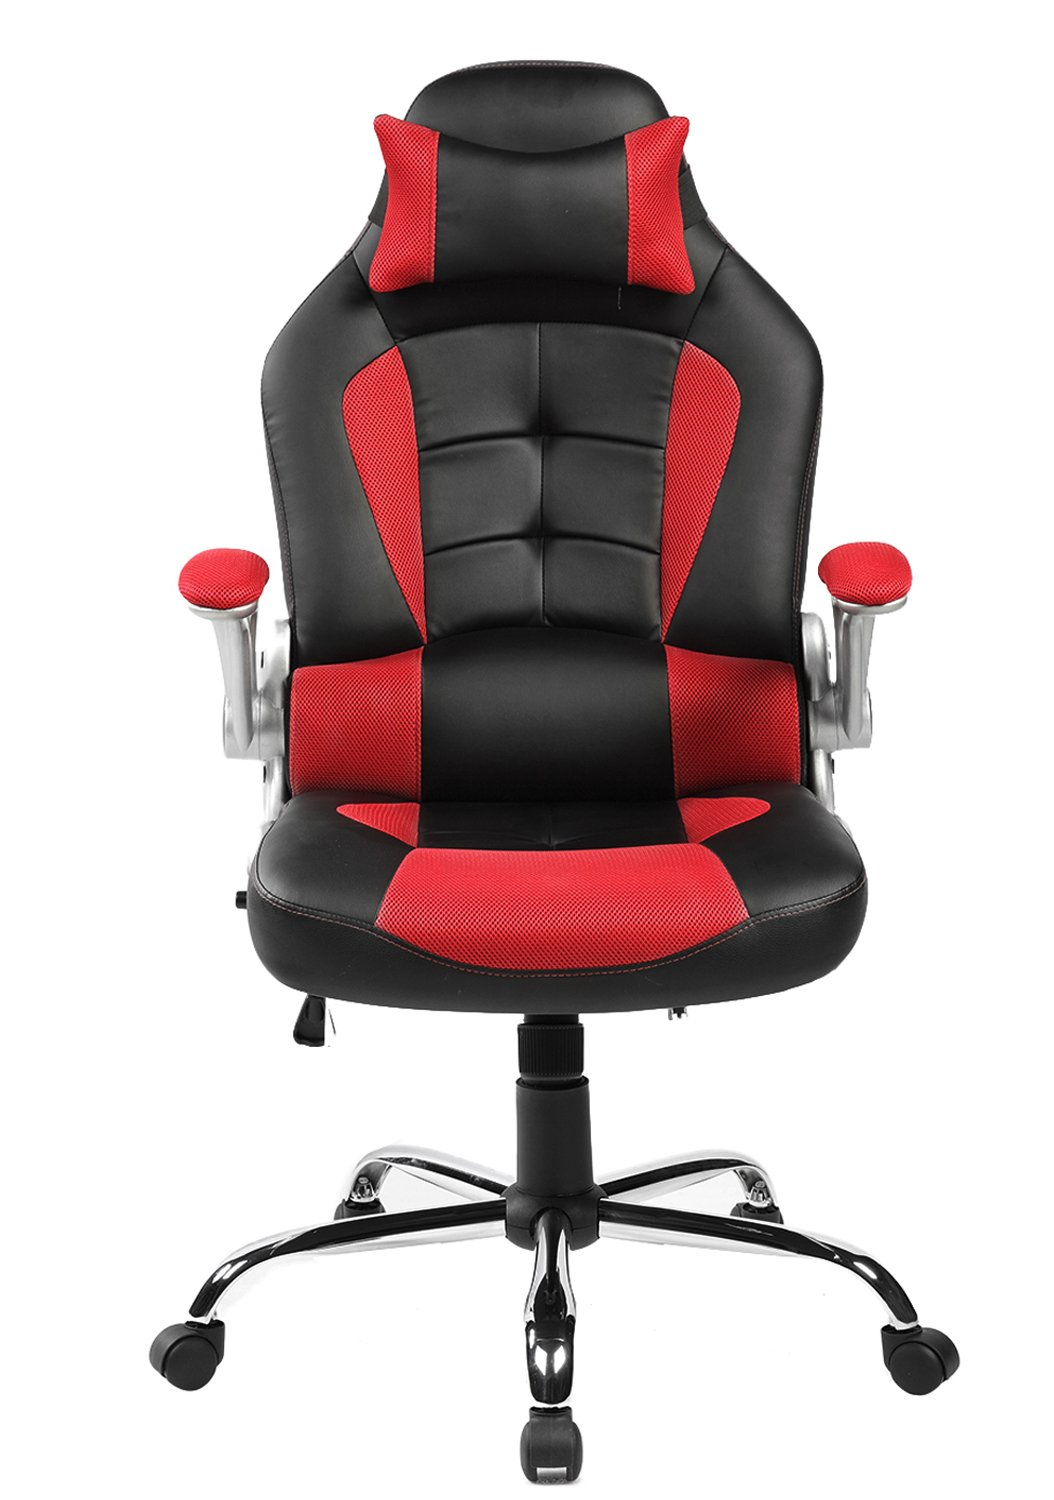 Amazon.com Merax High-Back Ergonomic Pu Leather Office Chair Racing Style Swivel Chair Computer Desk Lumbar Support Chair Napping Chair Kitchen u0026 Dining  sc 1 st  Amazon.com : best gaming recliner - islam-shia.org